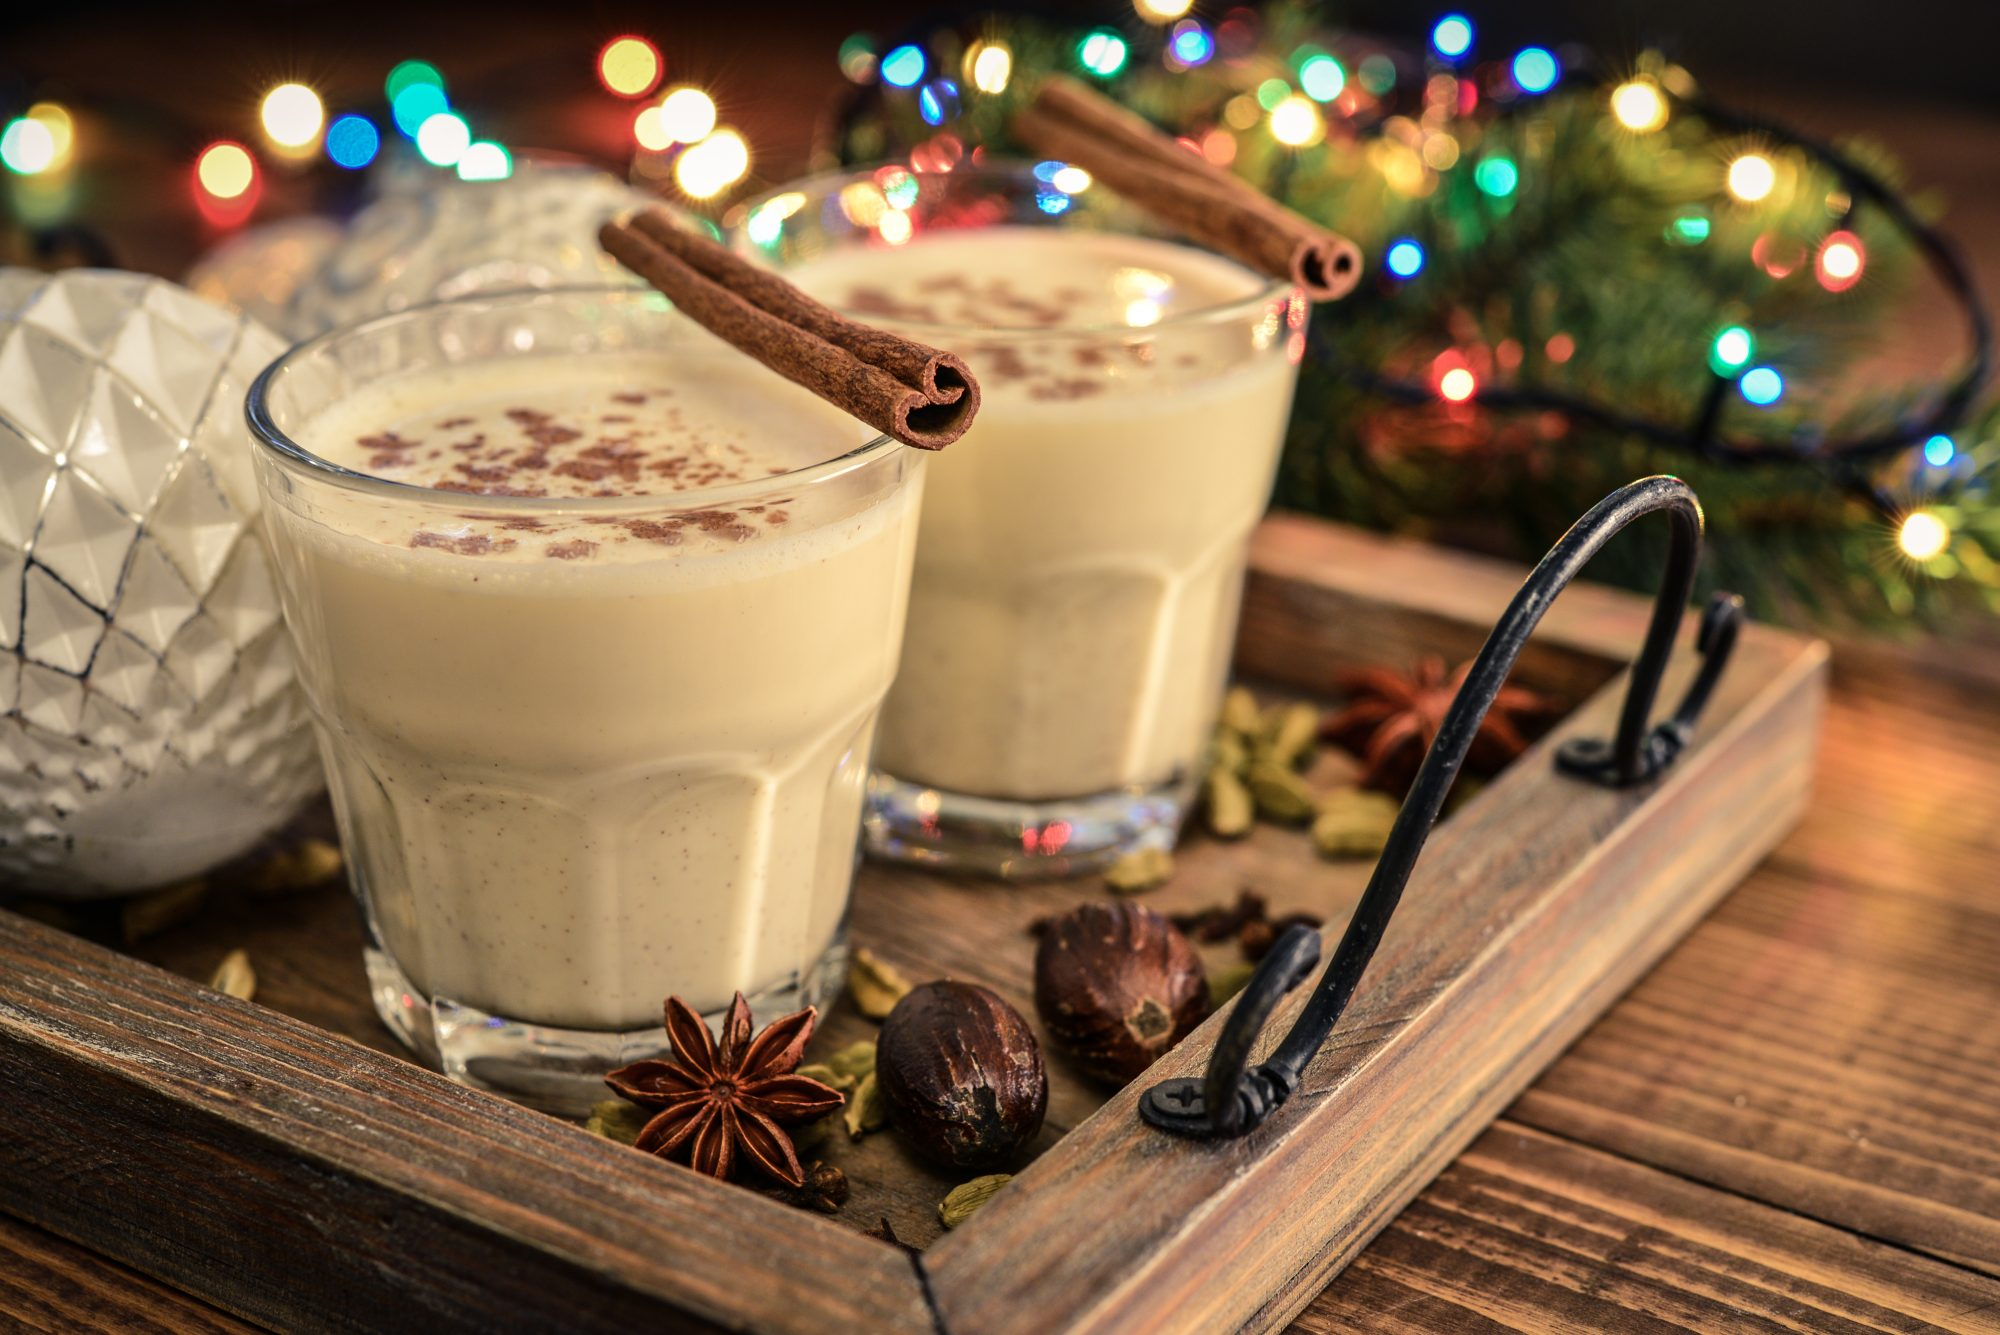 Traditional Christmas eggnog in glass with spices and Christmas lights on a wooden serving tray.